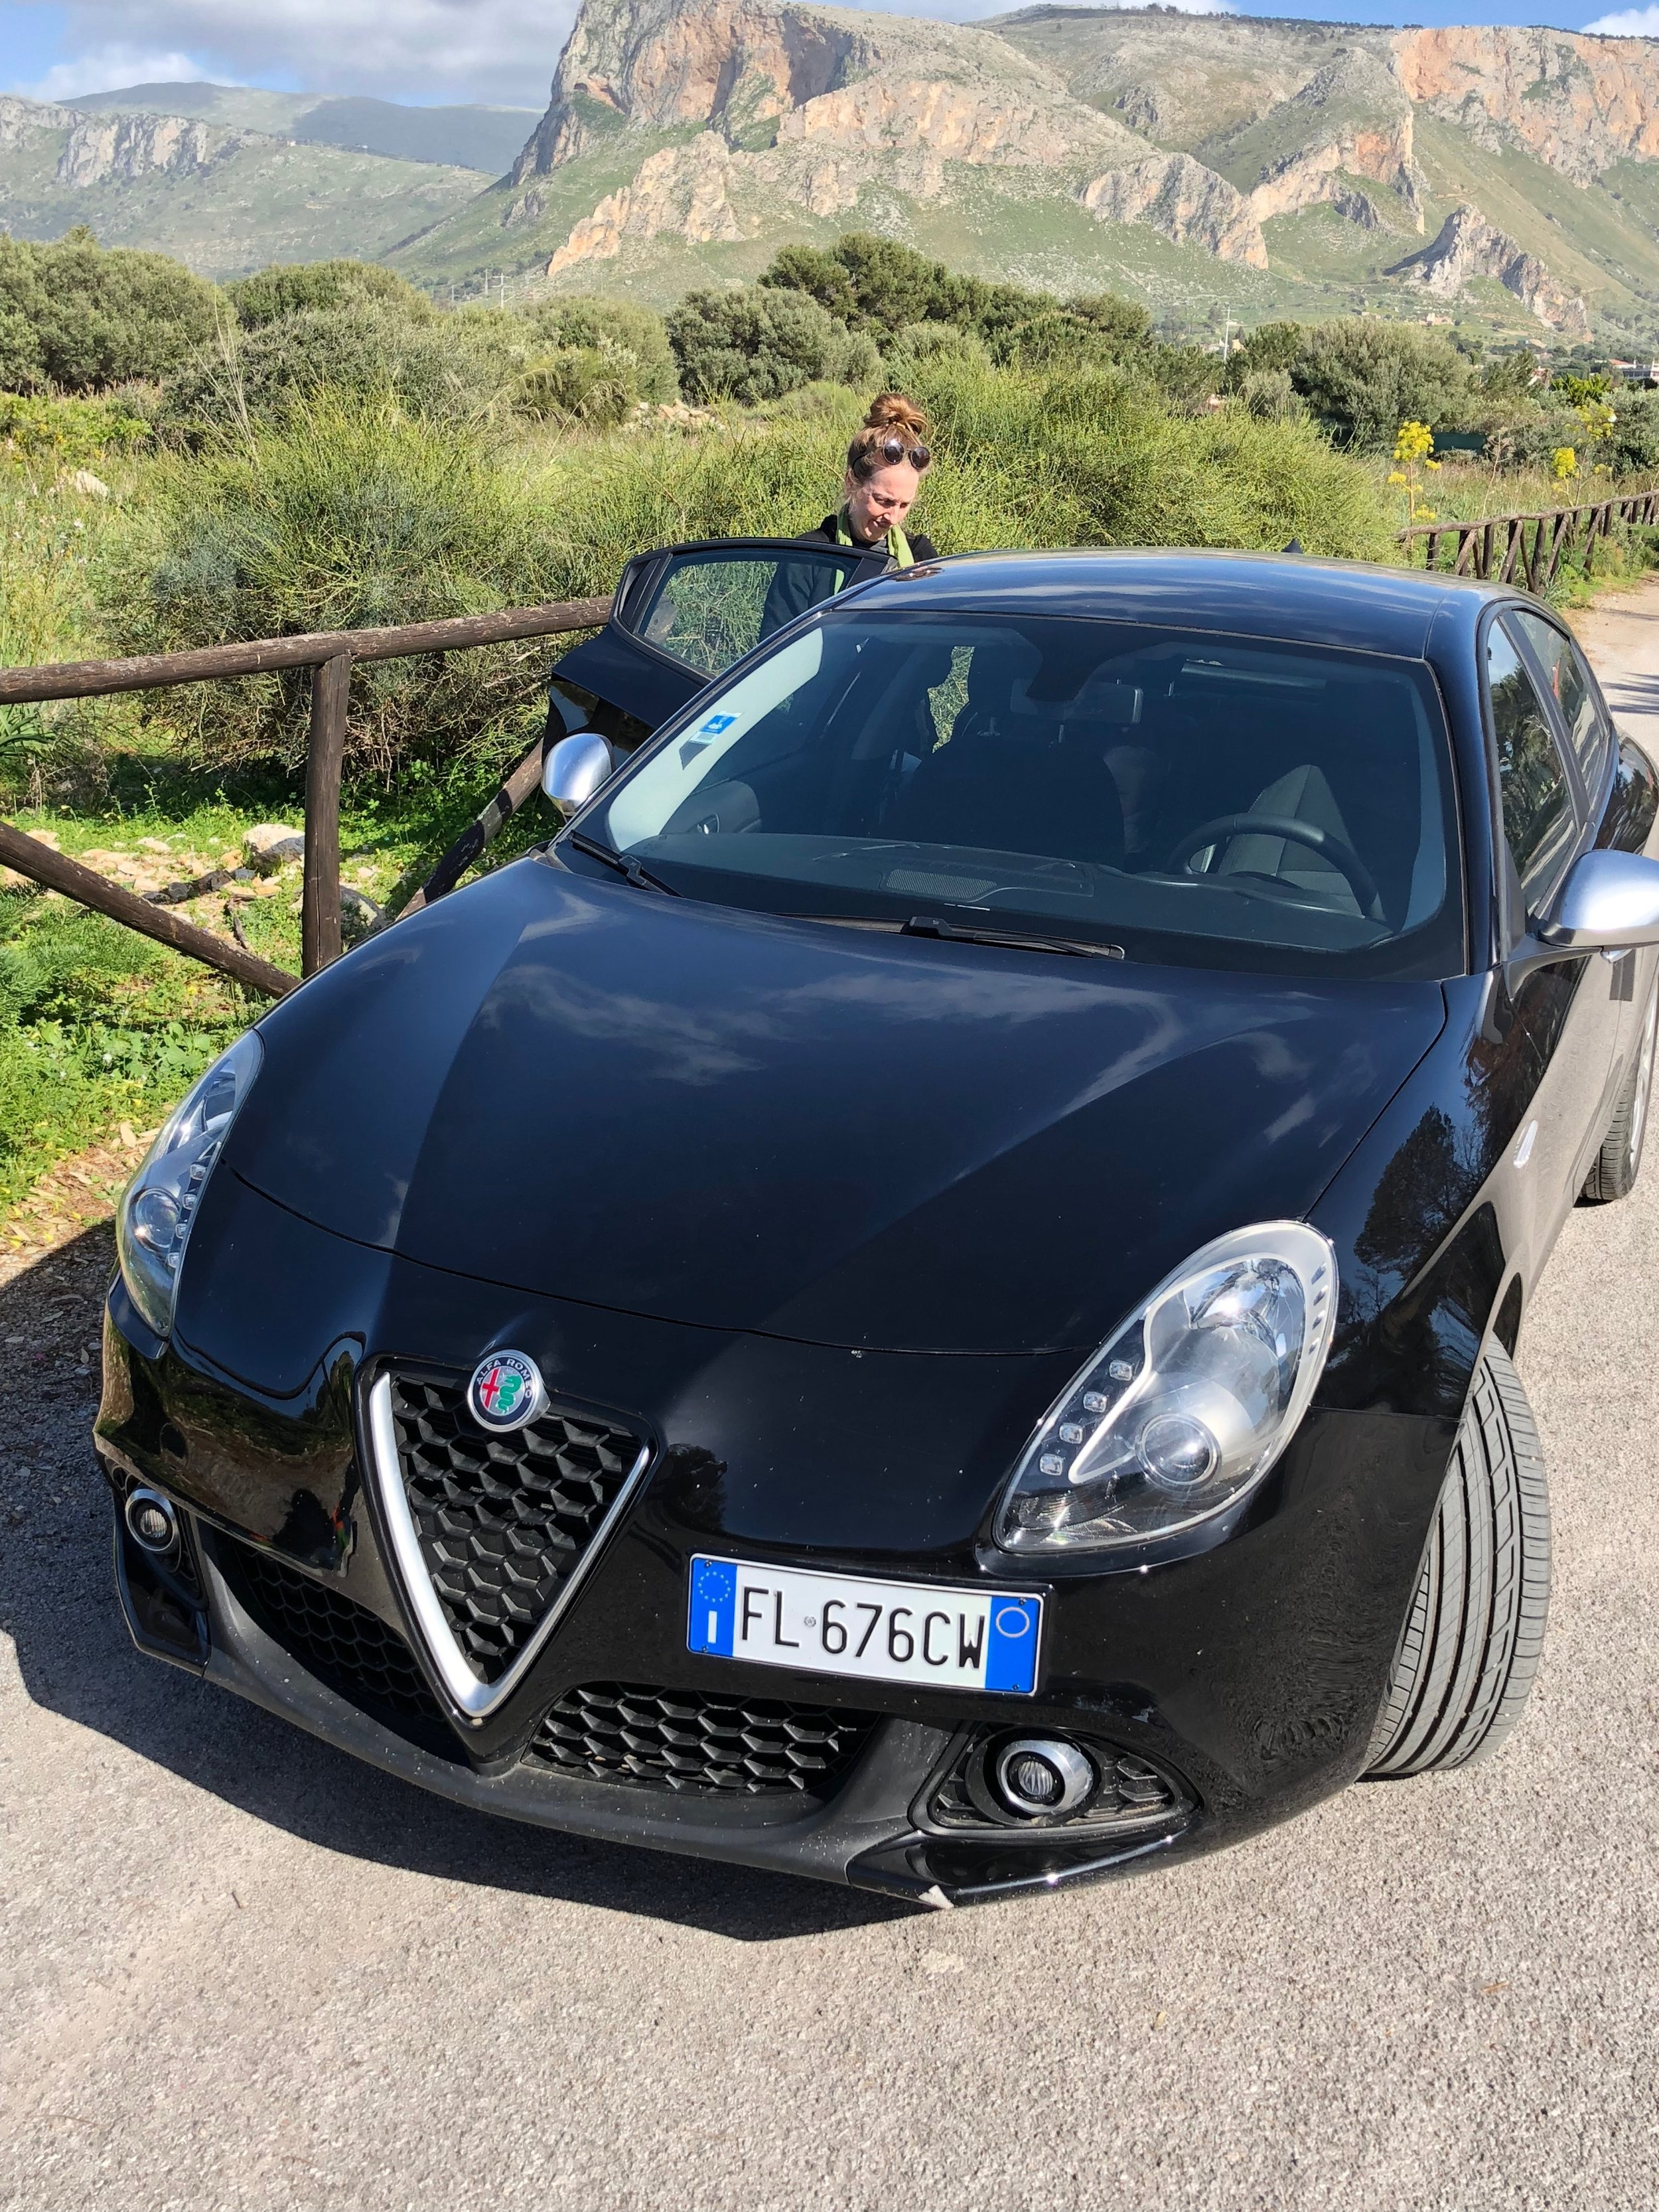 My wife posing with our Alfa Romeo. Most likely right after a gelato stop.